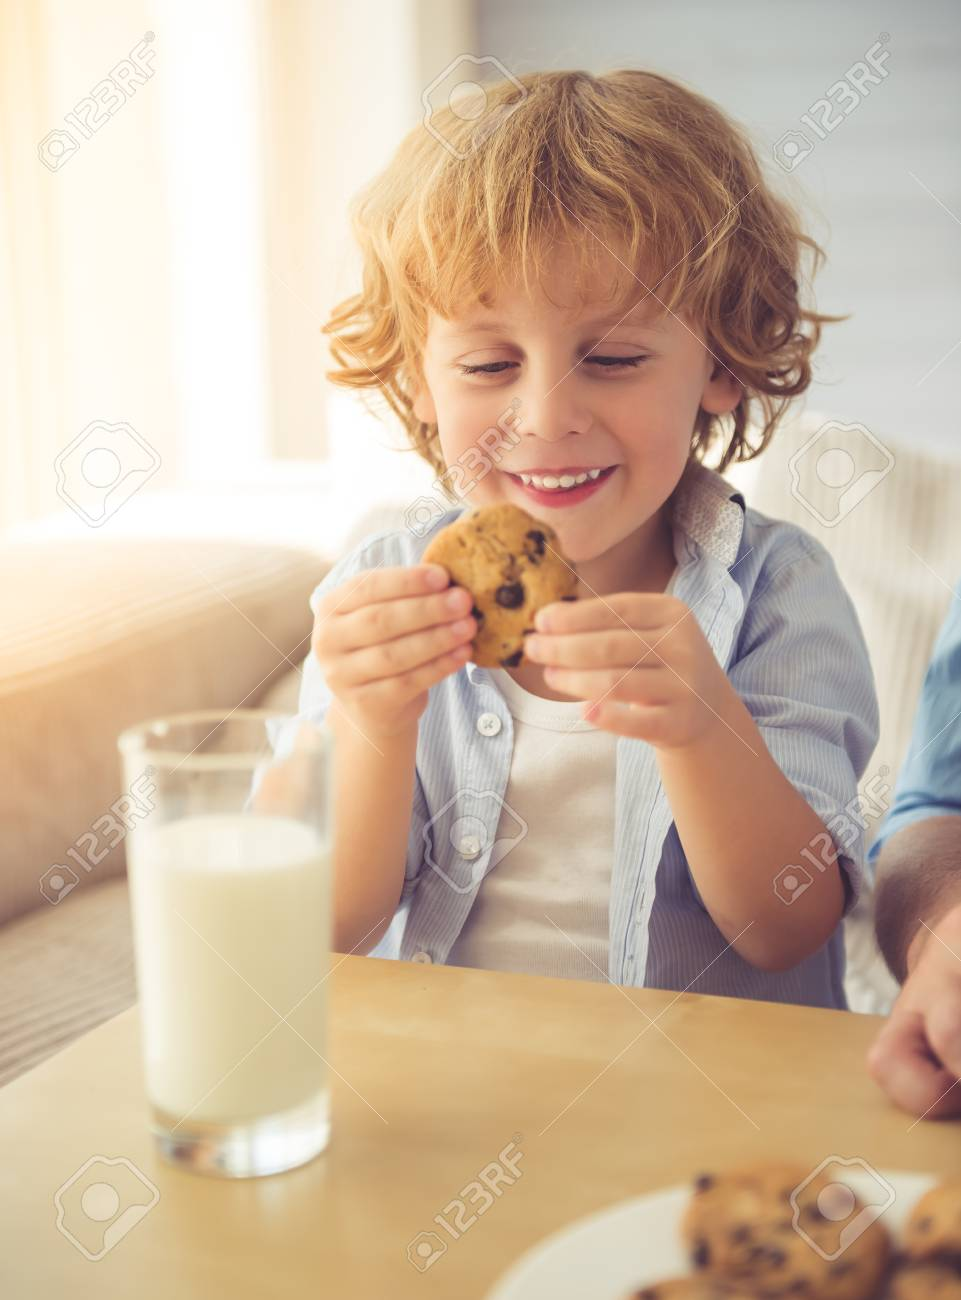 Milch Auf Couch Stock Photo